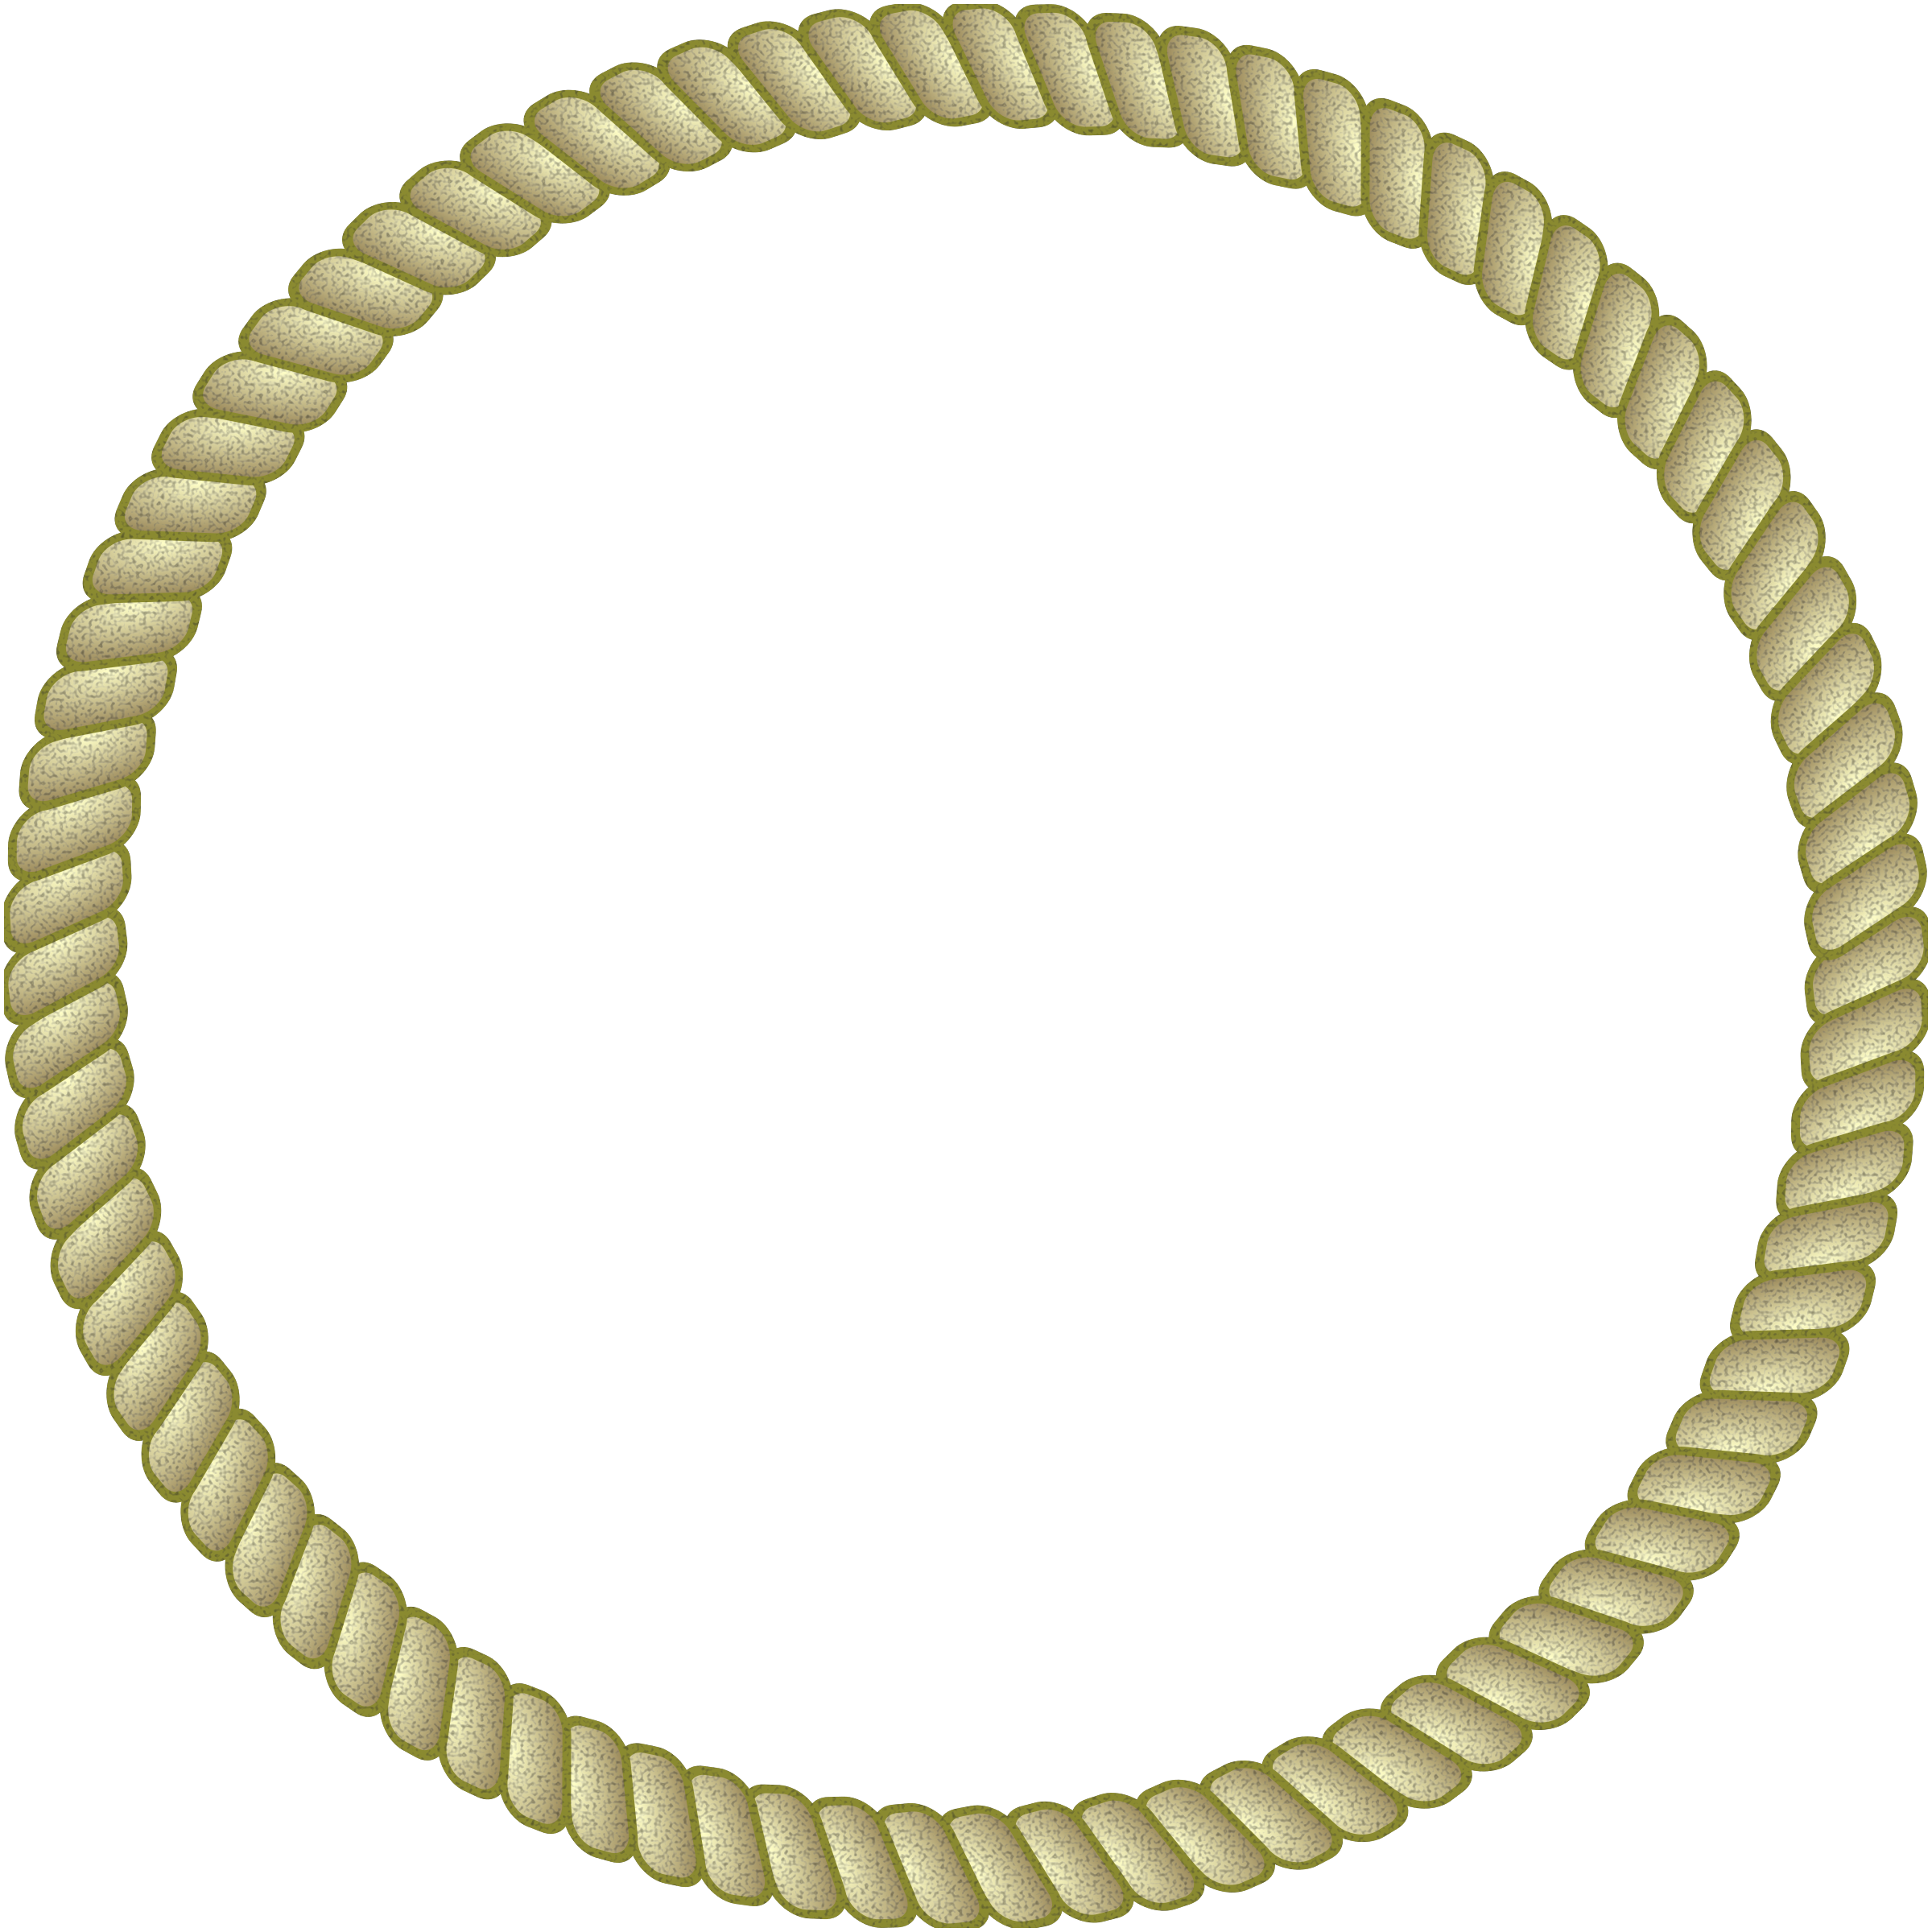 Rope border png. Clipart round big image